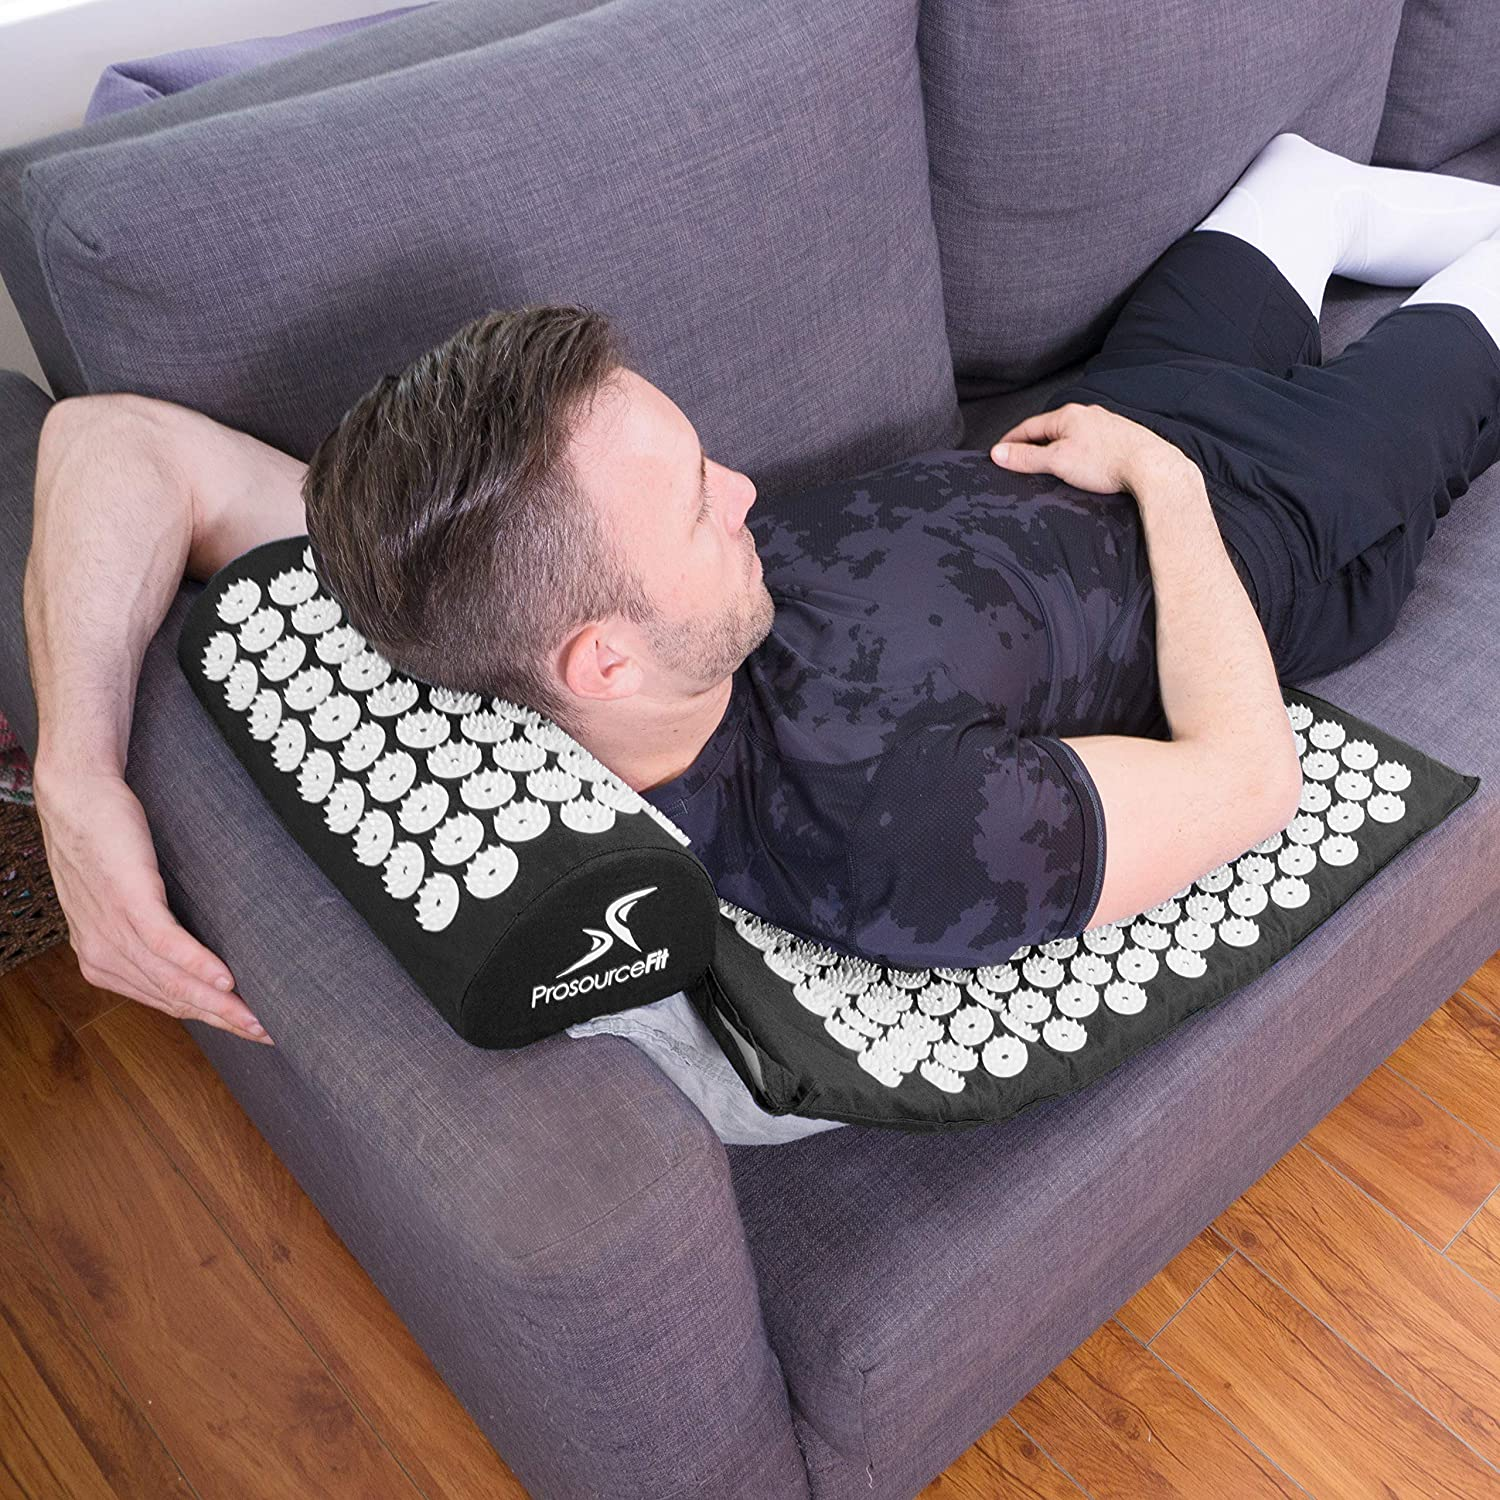 Acupressure Mat and Pillow Set for Back/Neck Pain Relief & Muscle Relaxation - Black